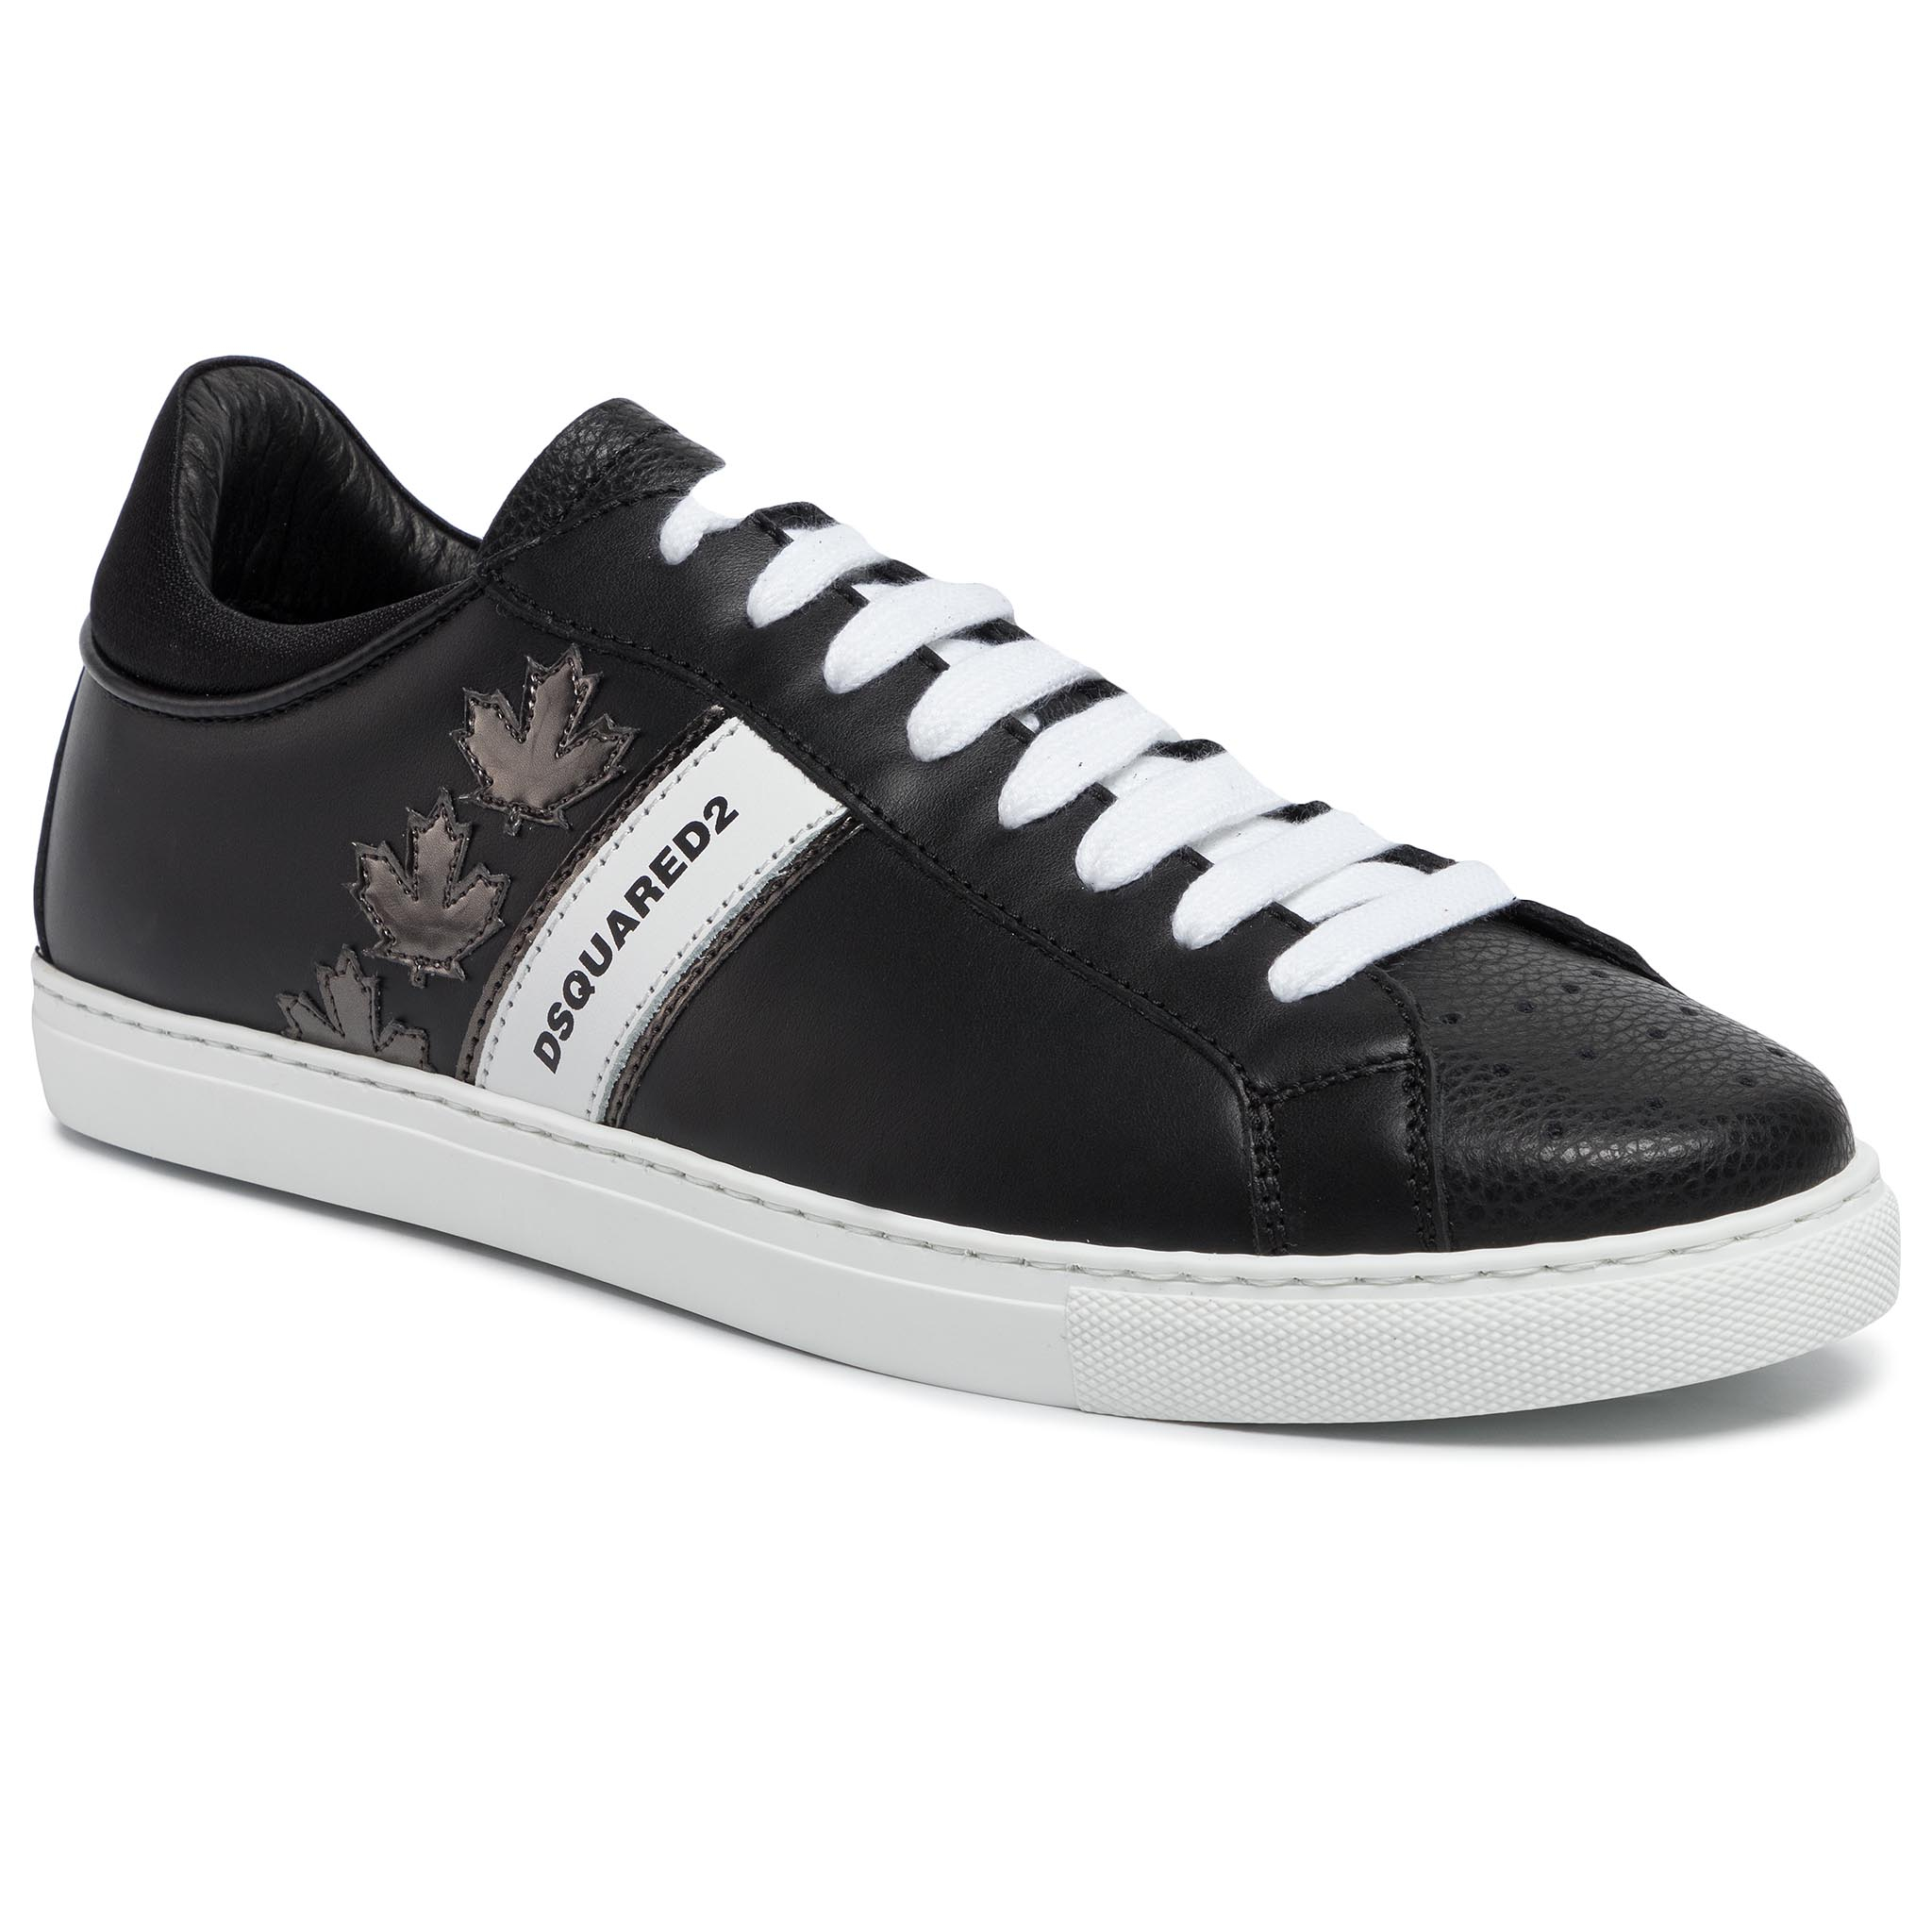 Sneakers DSQUARED2 - Lace-Up Low Top Sneakers SNM0035 06502259 M1082 Nero/Anthracite